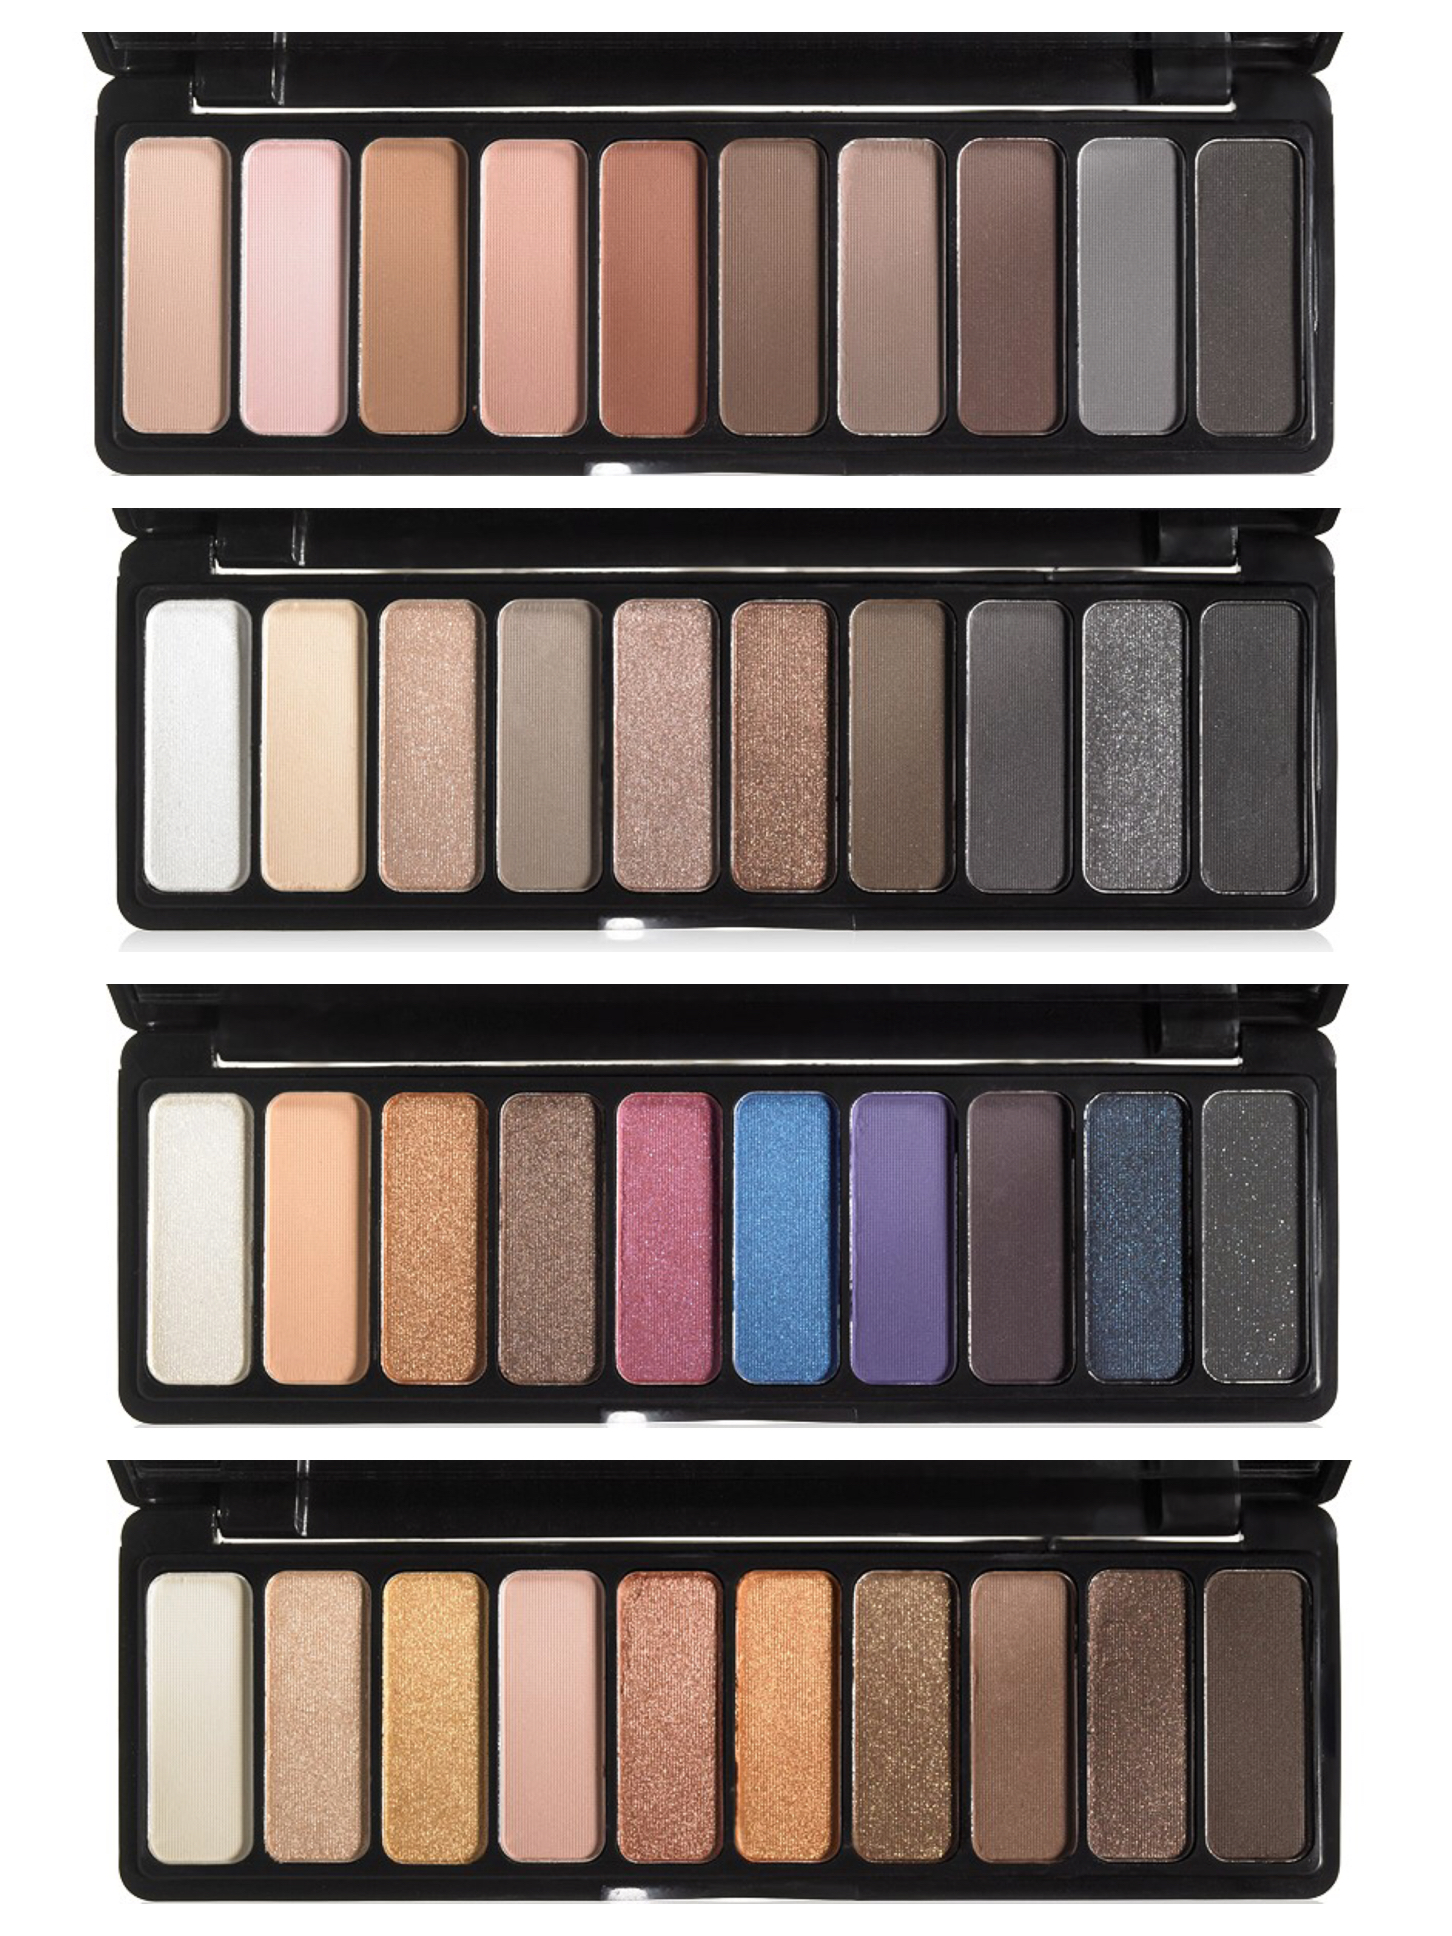 Eyeshadow Palette: New E.l.f. Eyeshadow Palettes! Plus, Mad For Matte Review